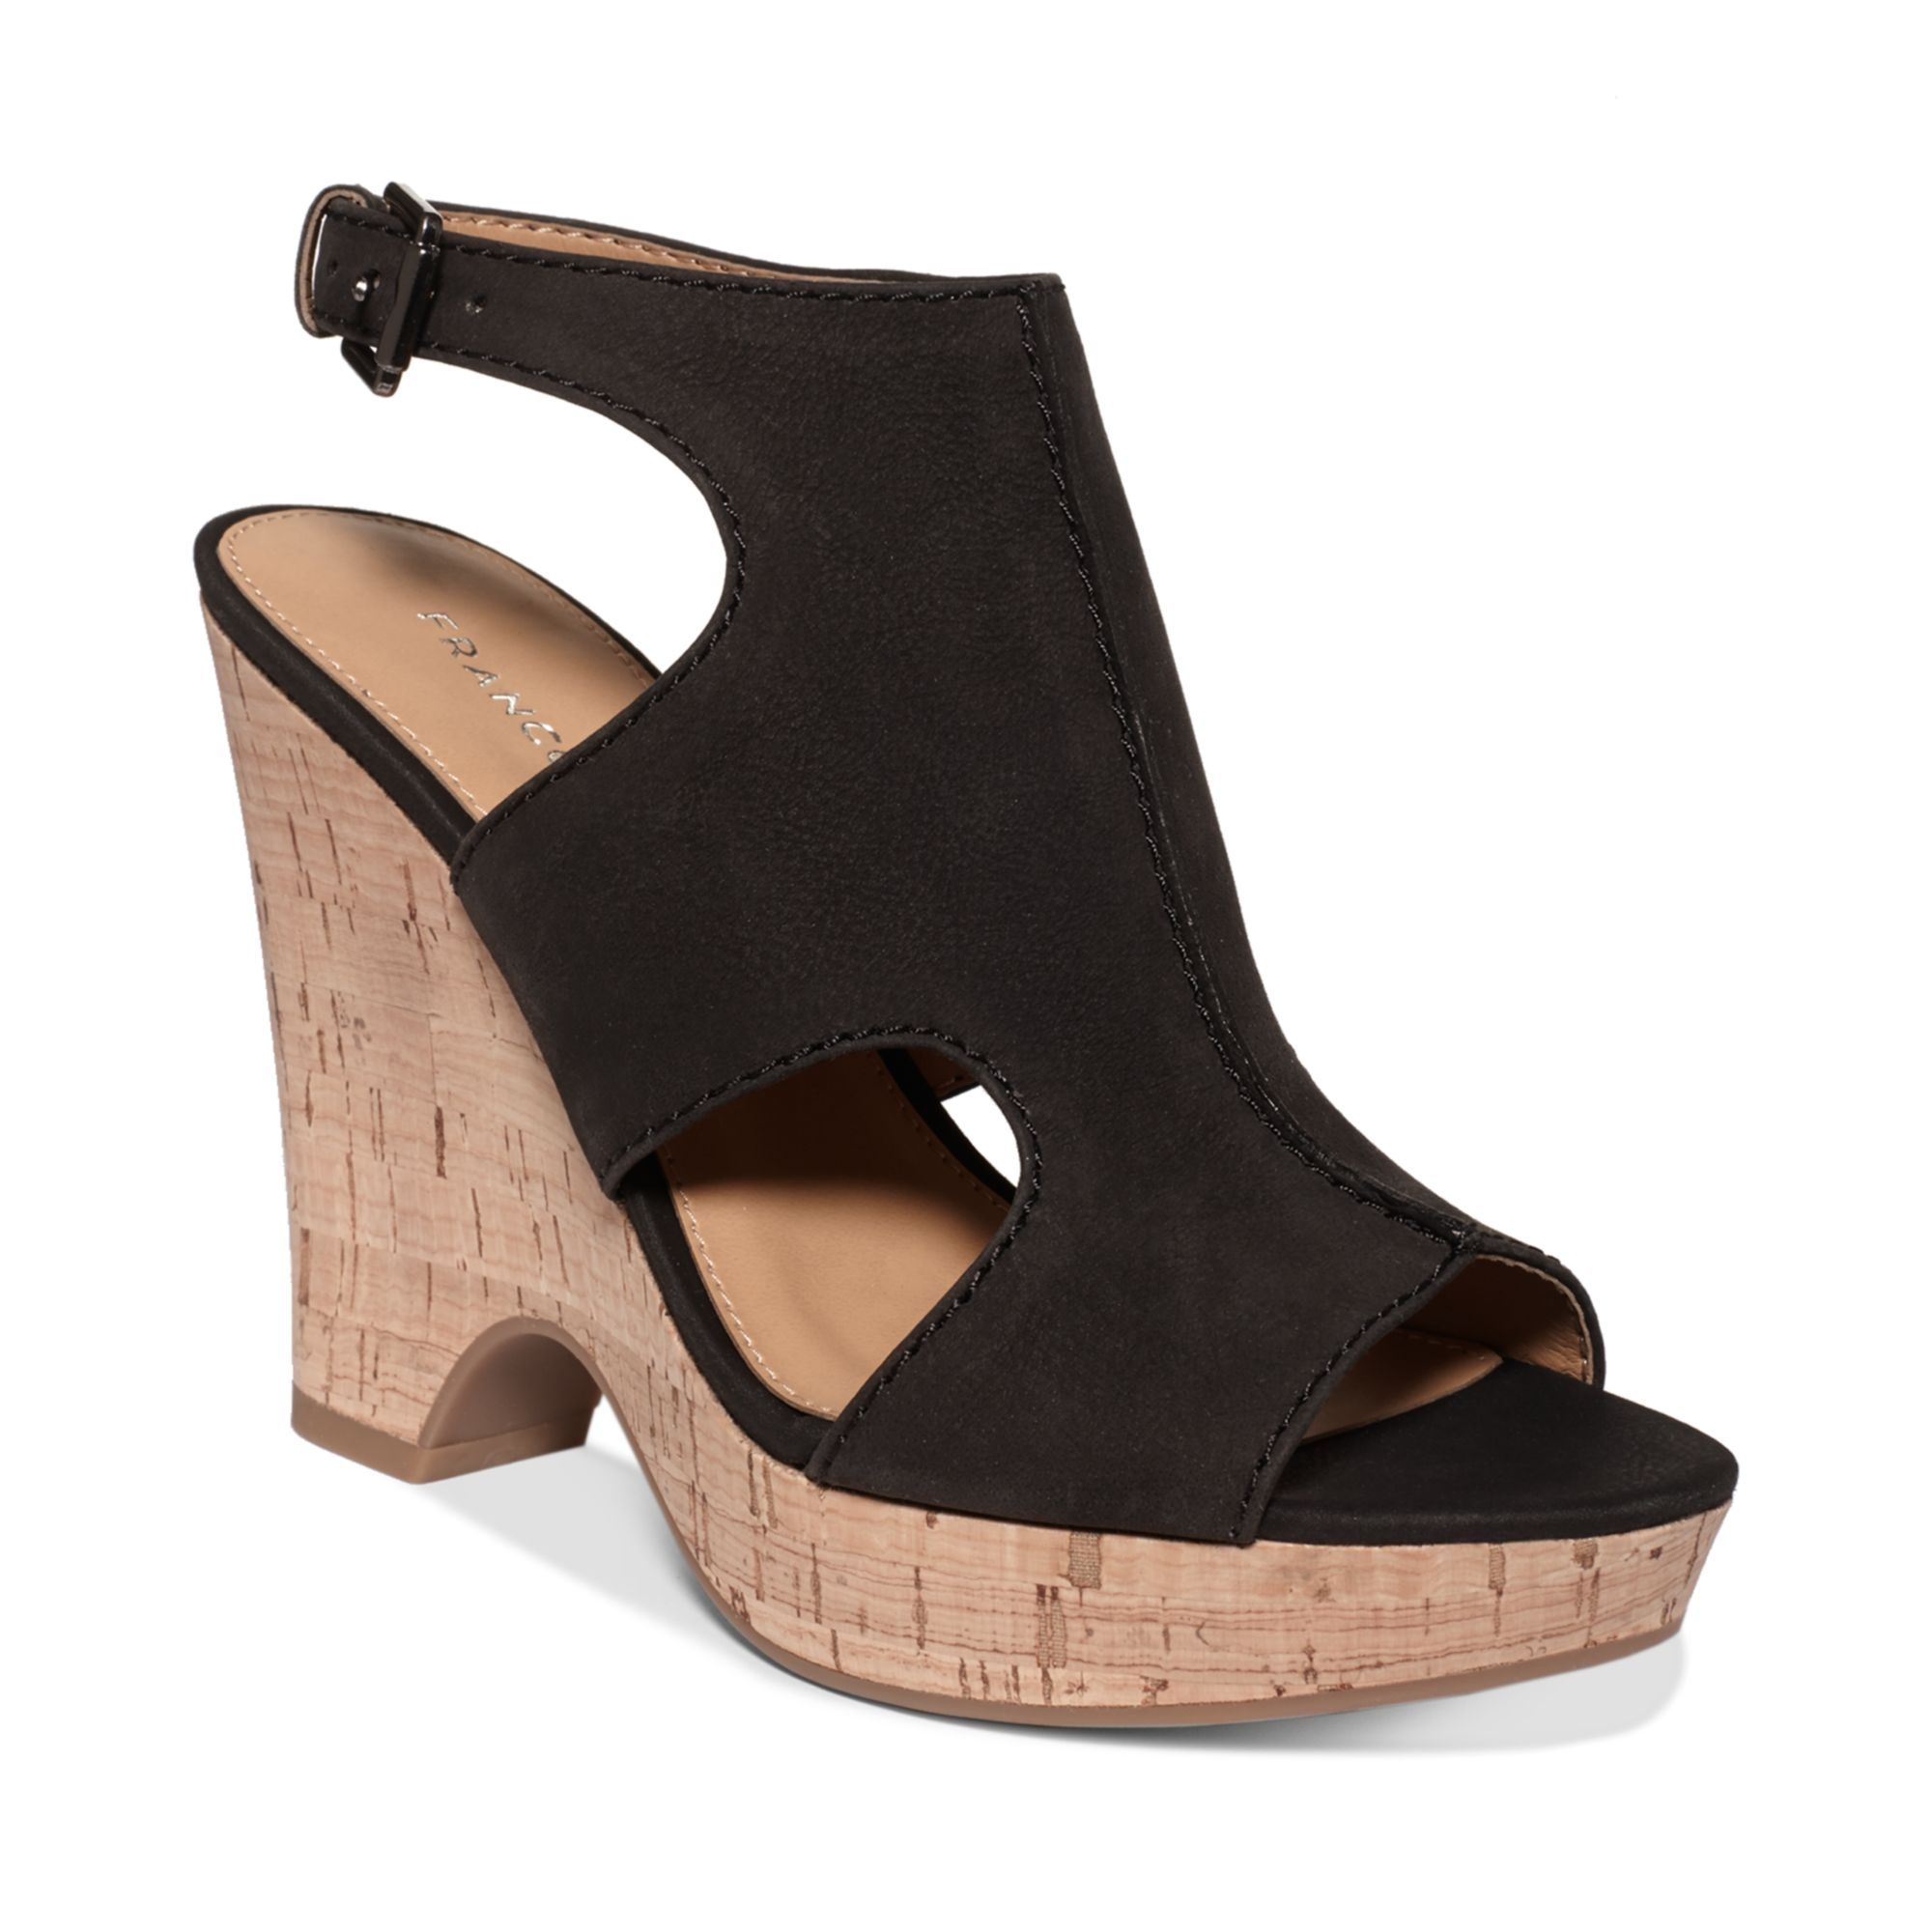 Whether you are looking for the best black wedge platform shoes or top-of-the-line black wedge platform shoes at affordable prices, you'll find a variety of black wedge platform shoes that fits your needs and budget. And don't forget, your black wedge platform shoes order may qualify for FlexPay, allowing you to buy now and pay later.